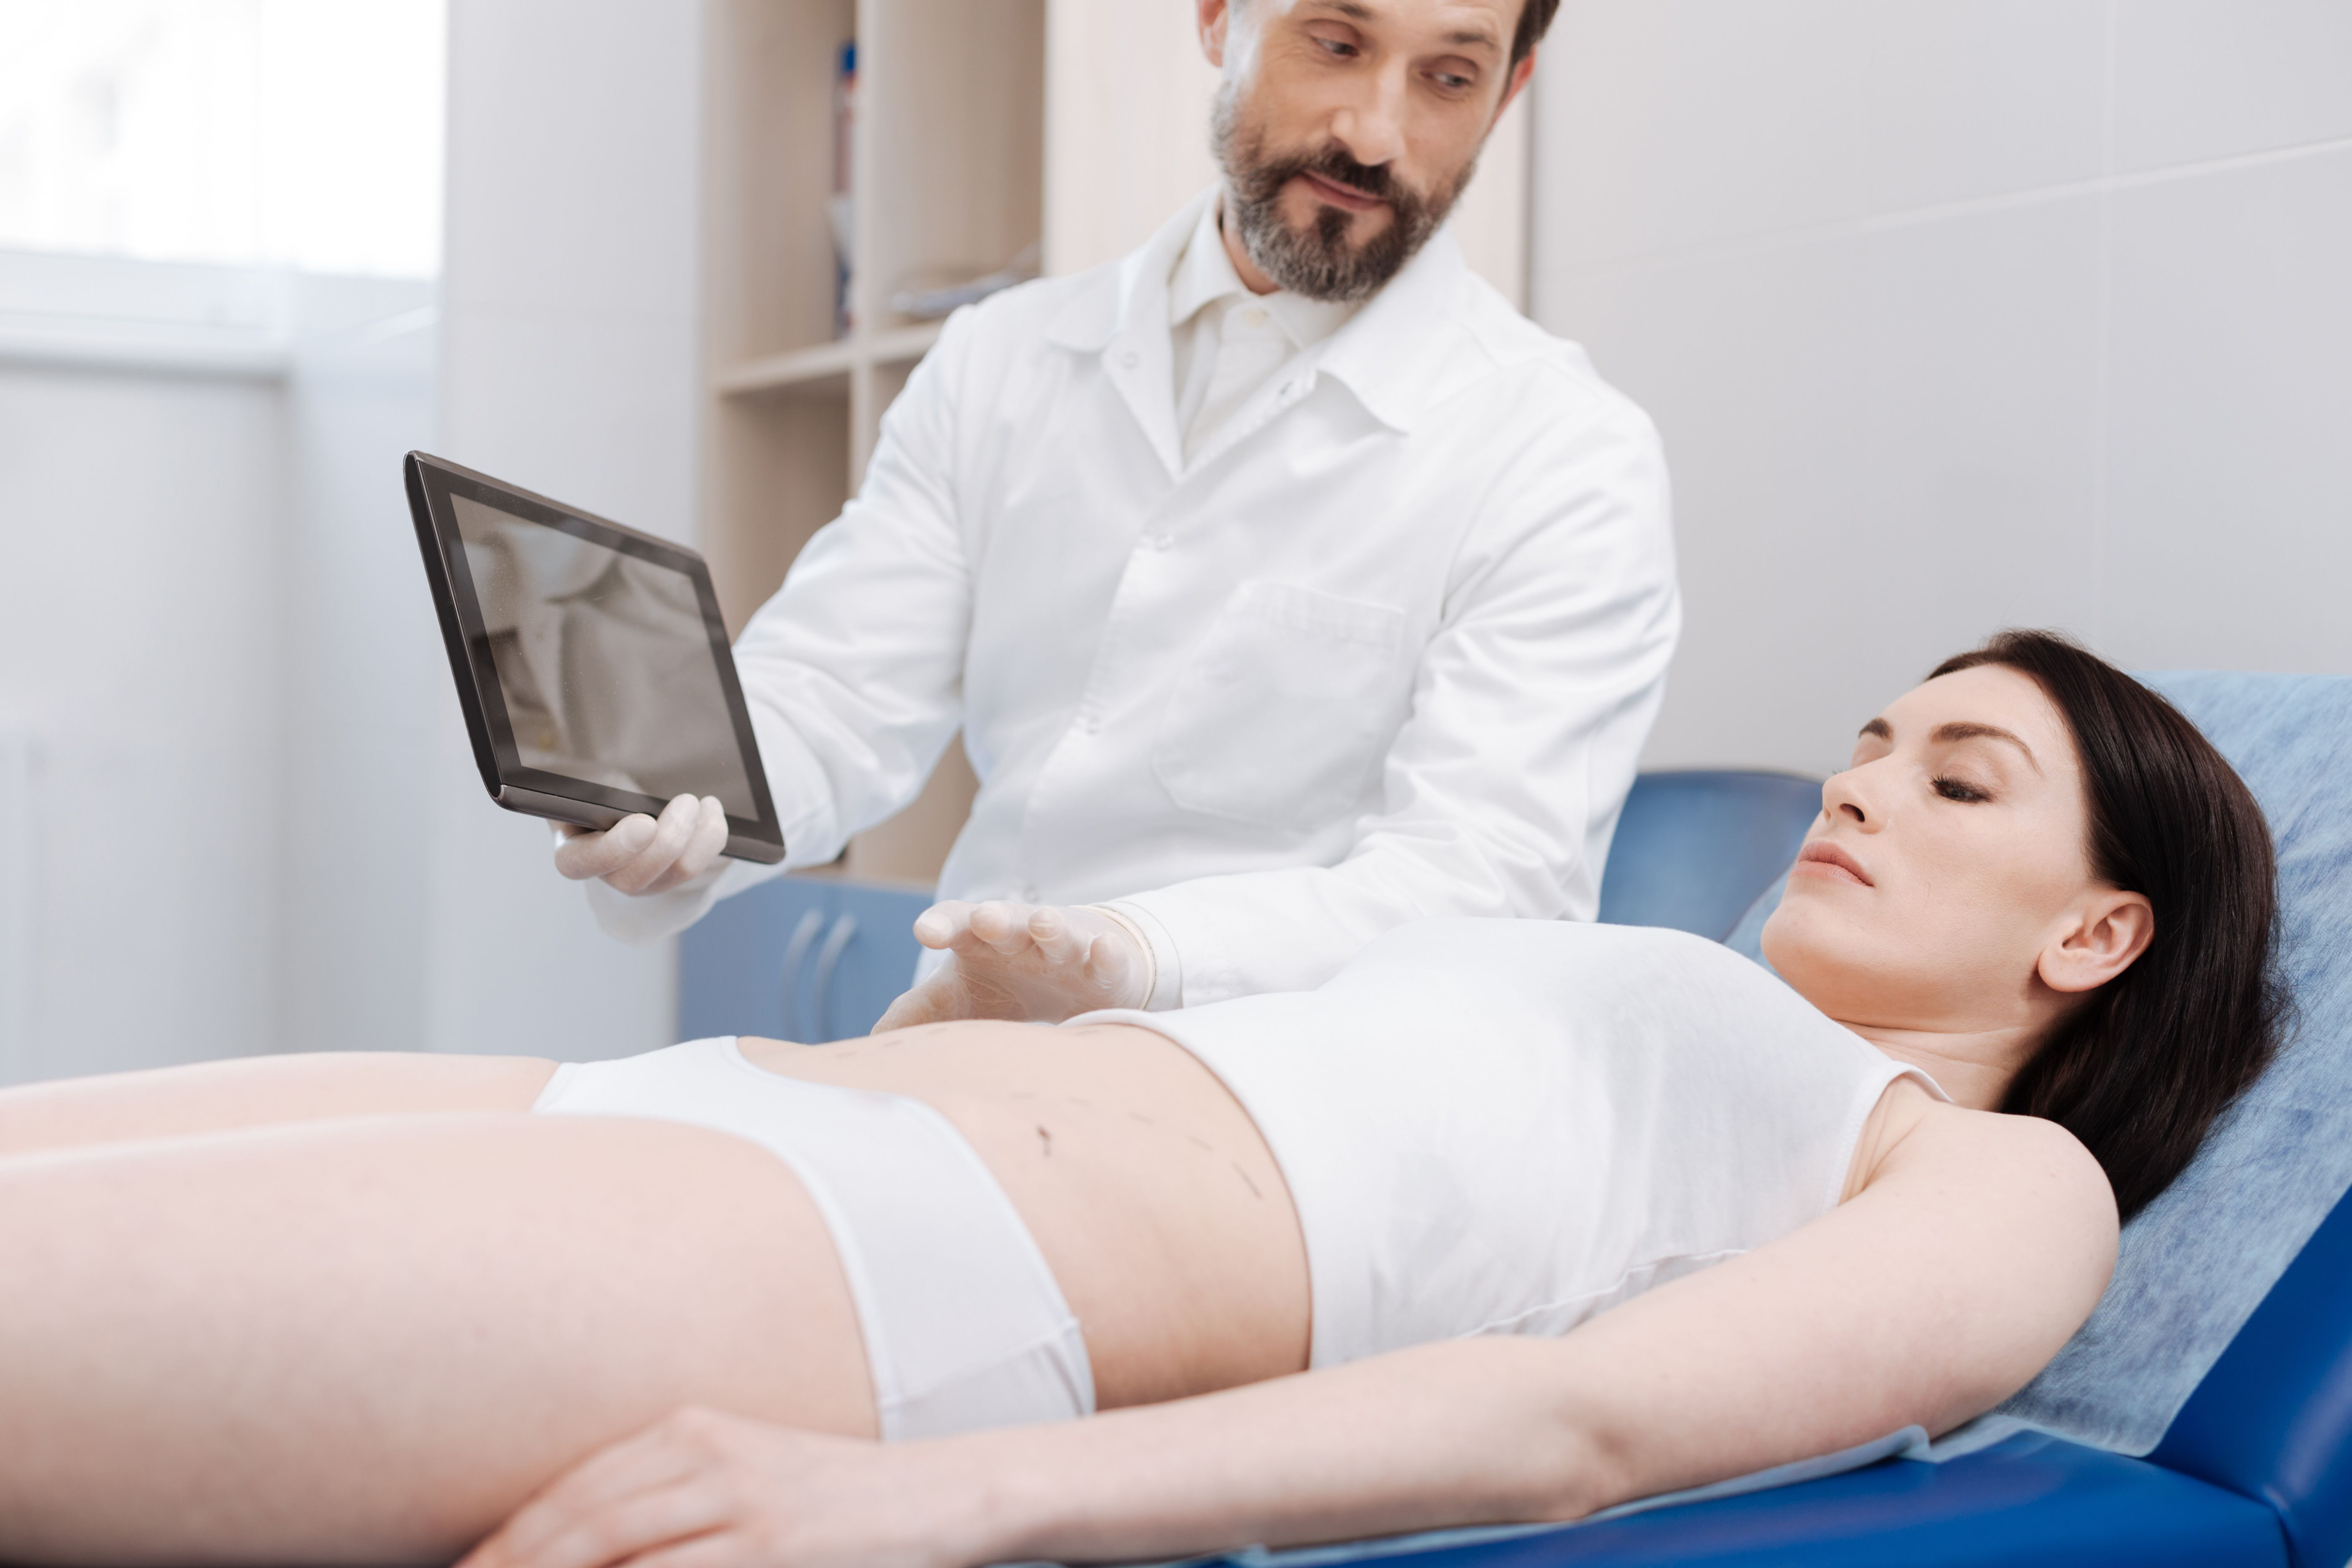 woman laying on exam bed looking at ipad with doctor